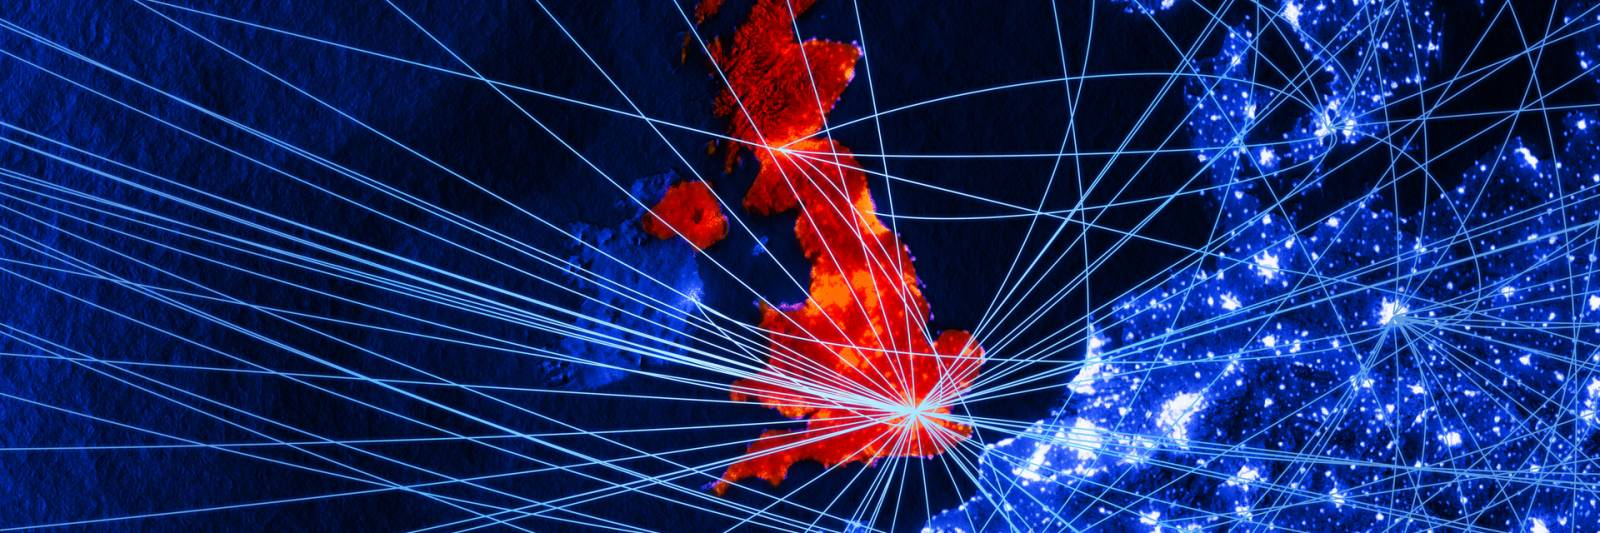 uk seeks divergence from gdpr to 'fuel growth'